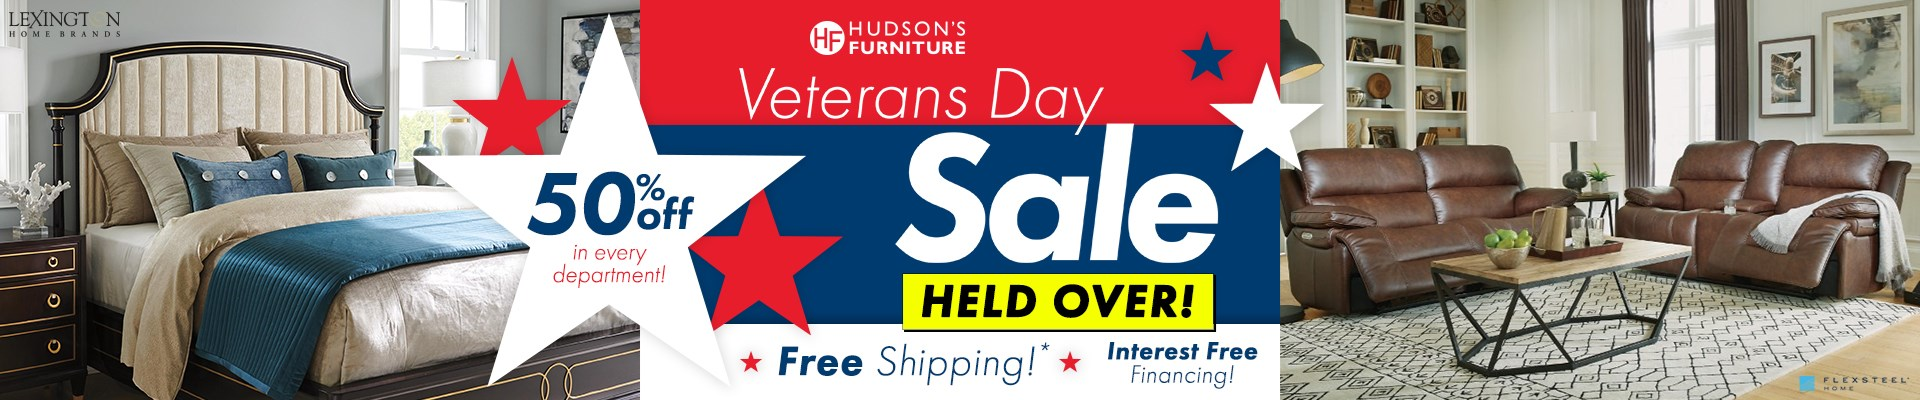 Vetrans Day Sale - Held Over - Save up to 50% on Select Products